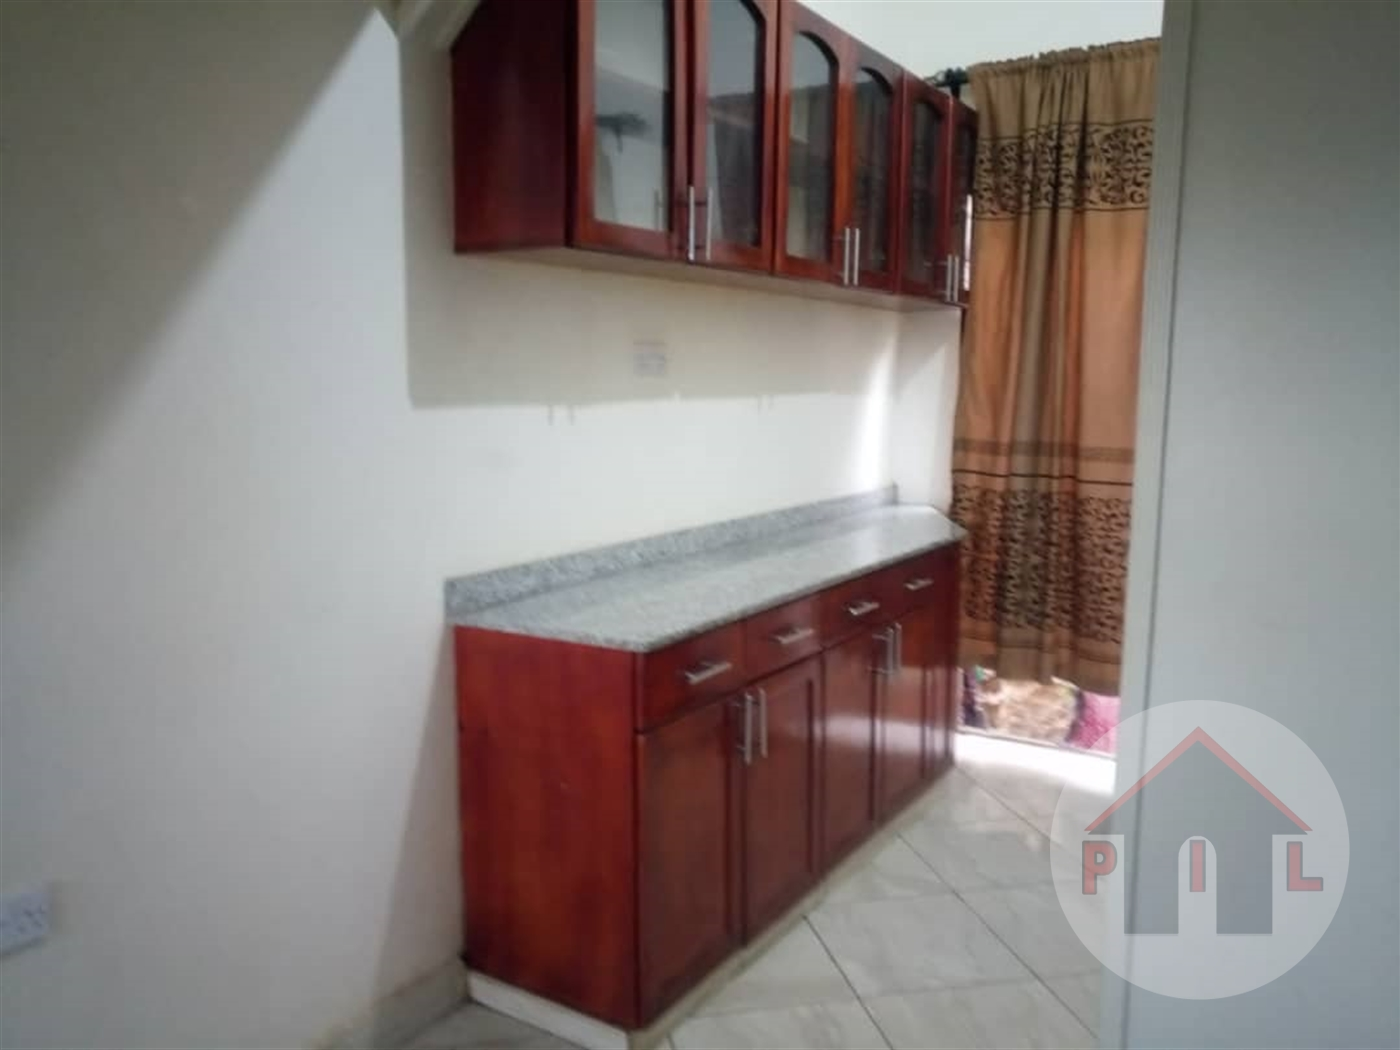 Rental units for rent in Kisaasi Kampala